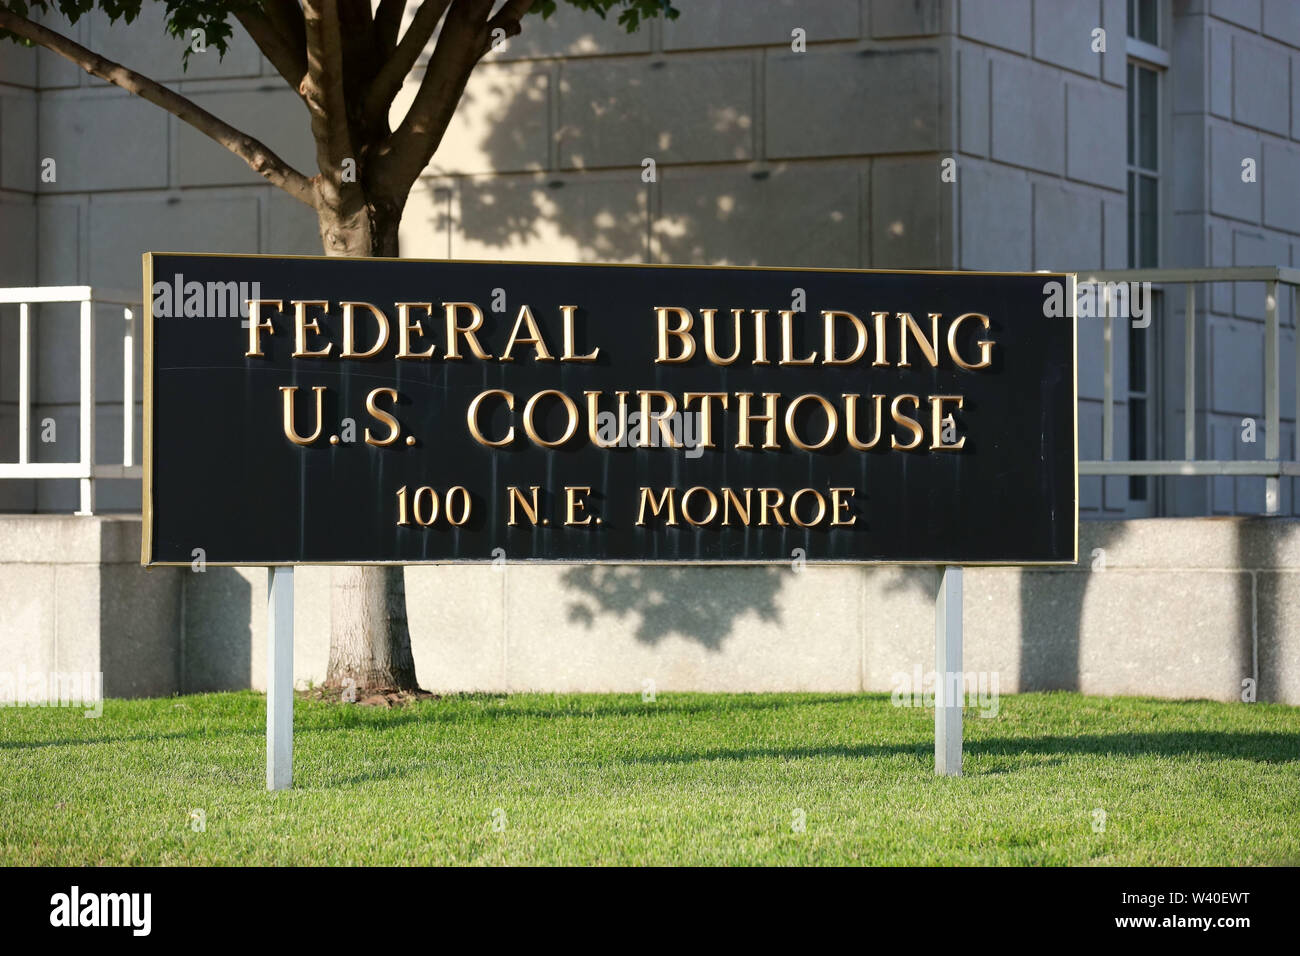 Peoria, USA. 18th July, 2019. Photo taken on July 18, 2019 shows a federal courthouse building in Peoria, Illinois, the United States. Brendt Christensen, the kidnapper and killer of Chinese scholar Zhang Yingying in 2017, was sentenced on Thursday to life imprisonment without possibility of release, Judge James Shadid announced the verdict in a federal court of Peoria in the U.S. state of Illinois, after the jury failed to reach a unanimous decision on whether he should be sentenced to death or life in prison. Credit: Wang Ping/Xinhua/Alamy Live News - Stock Image